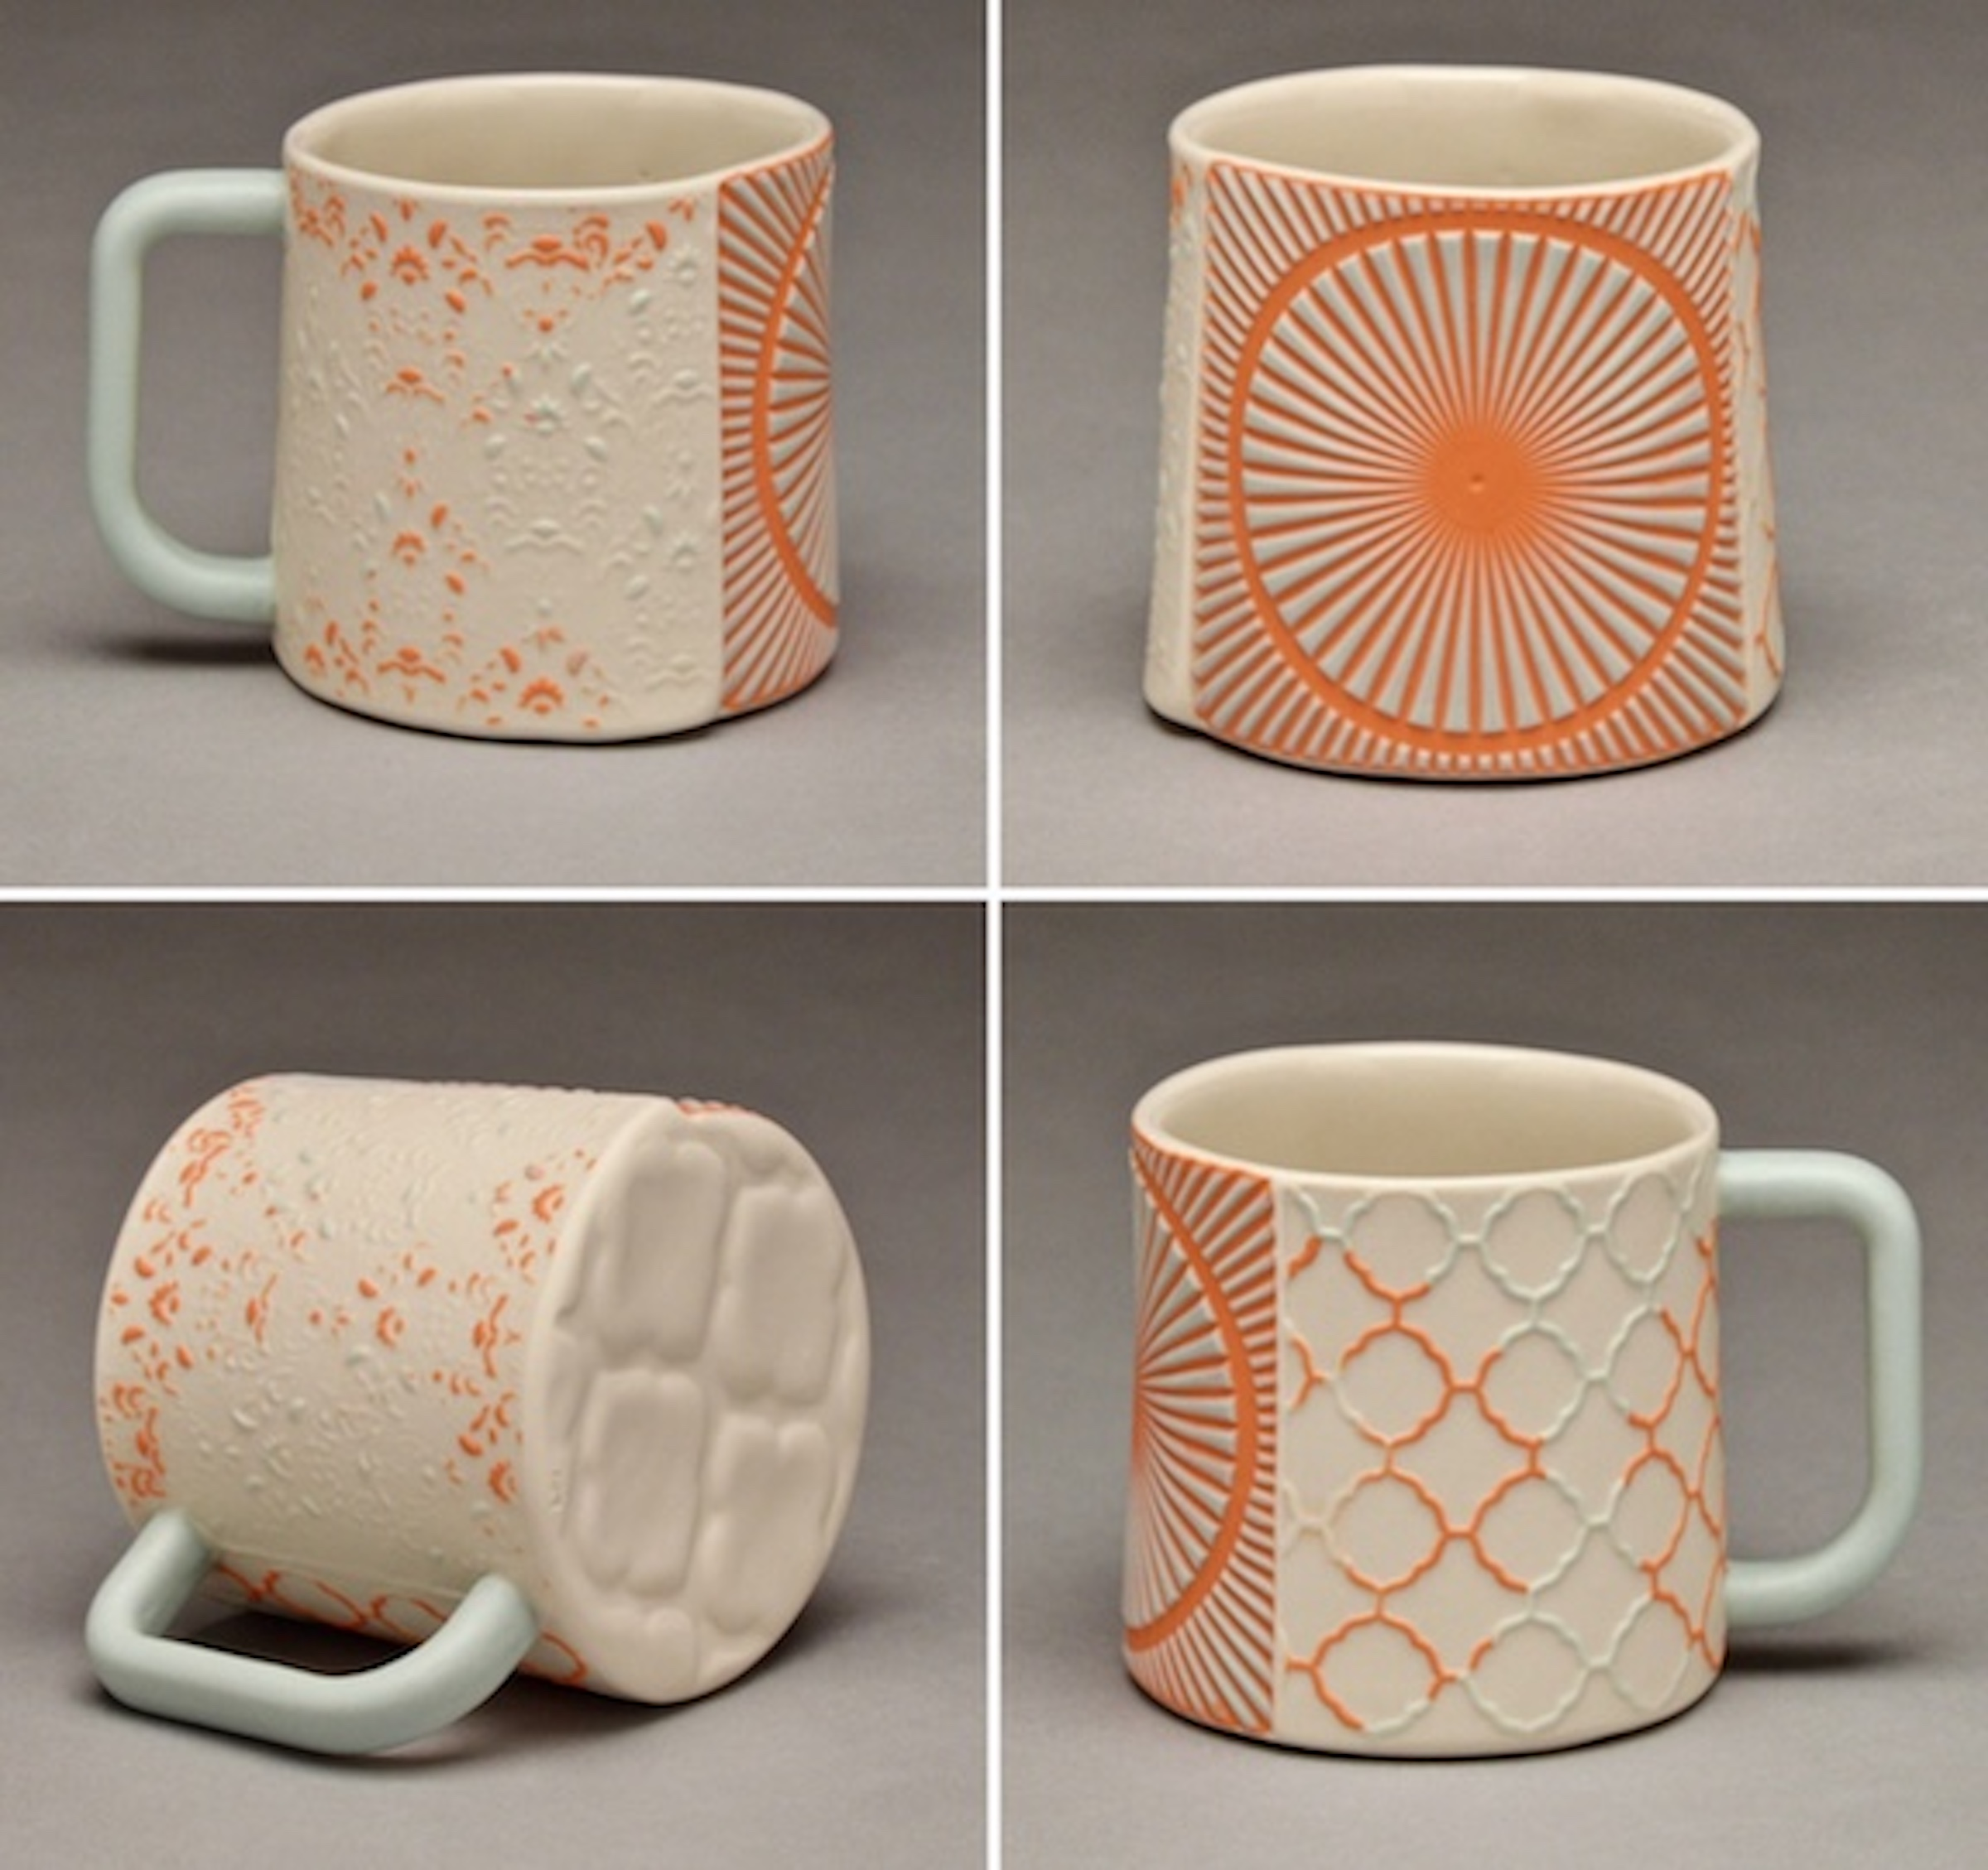 Orange and White Mug.jpg